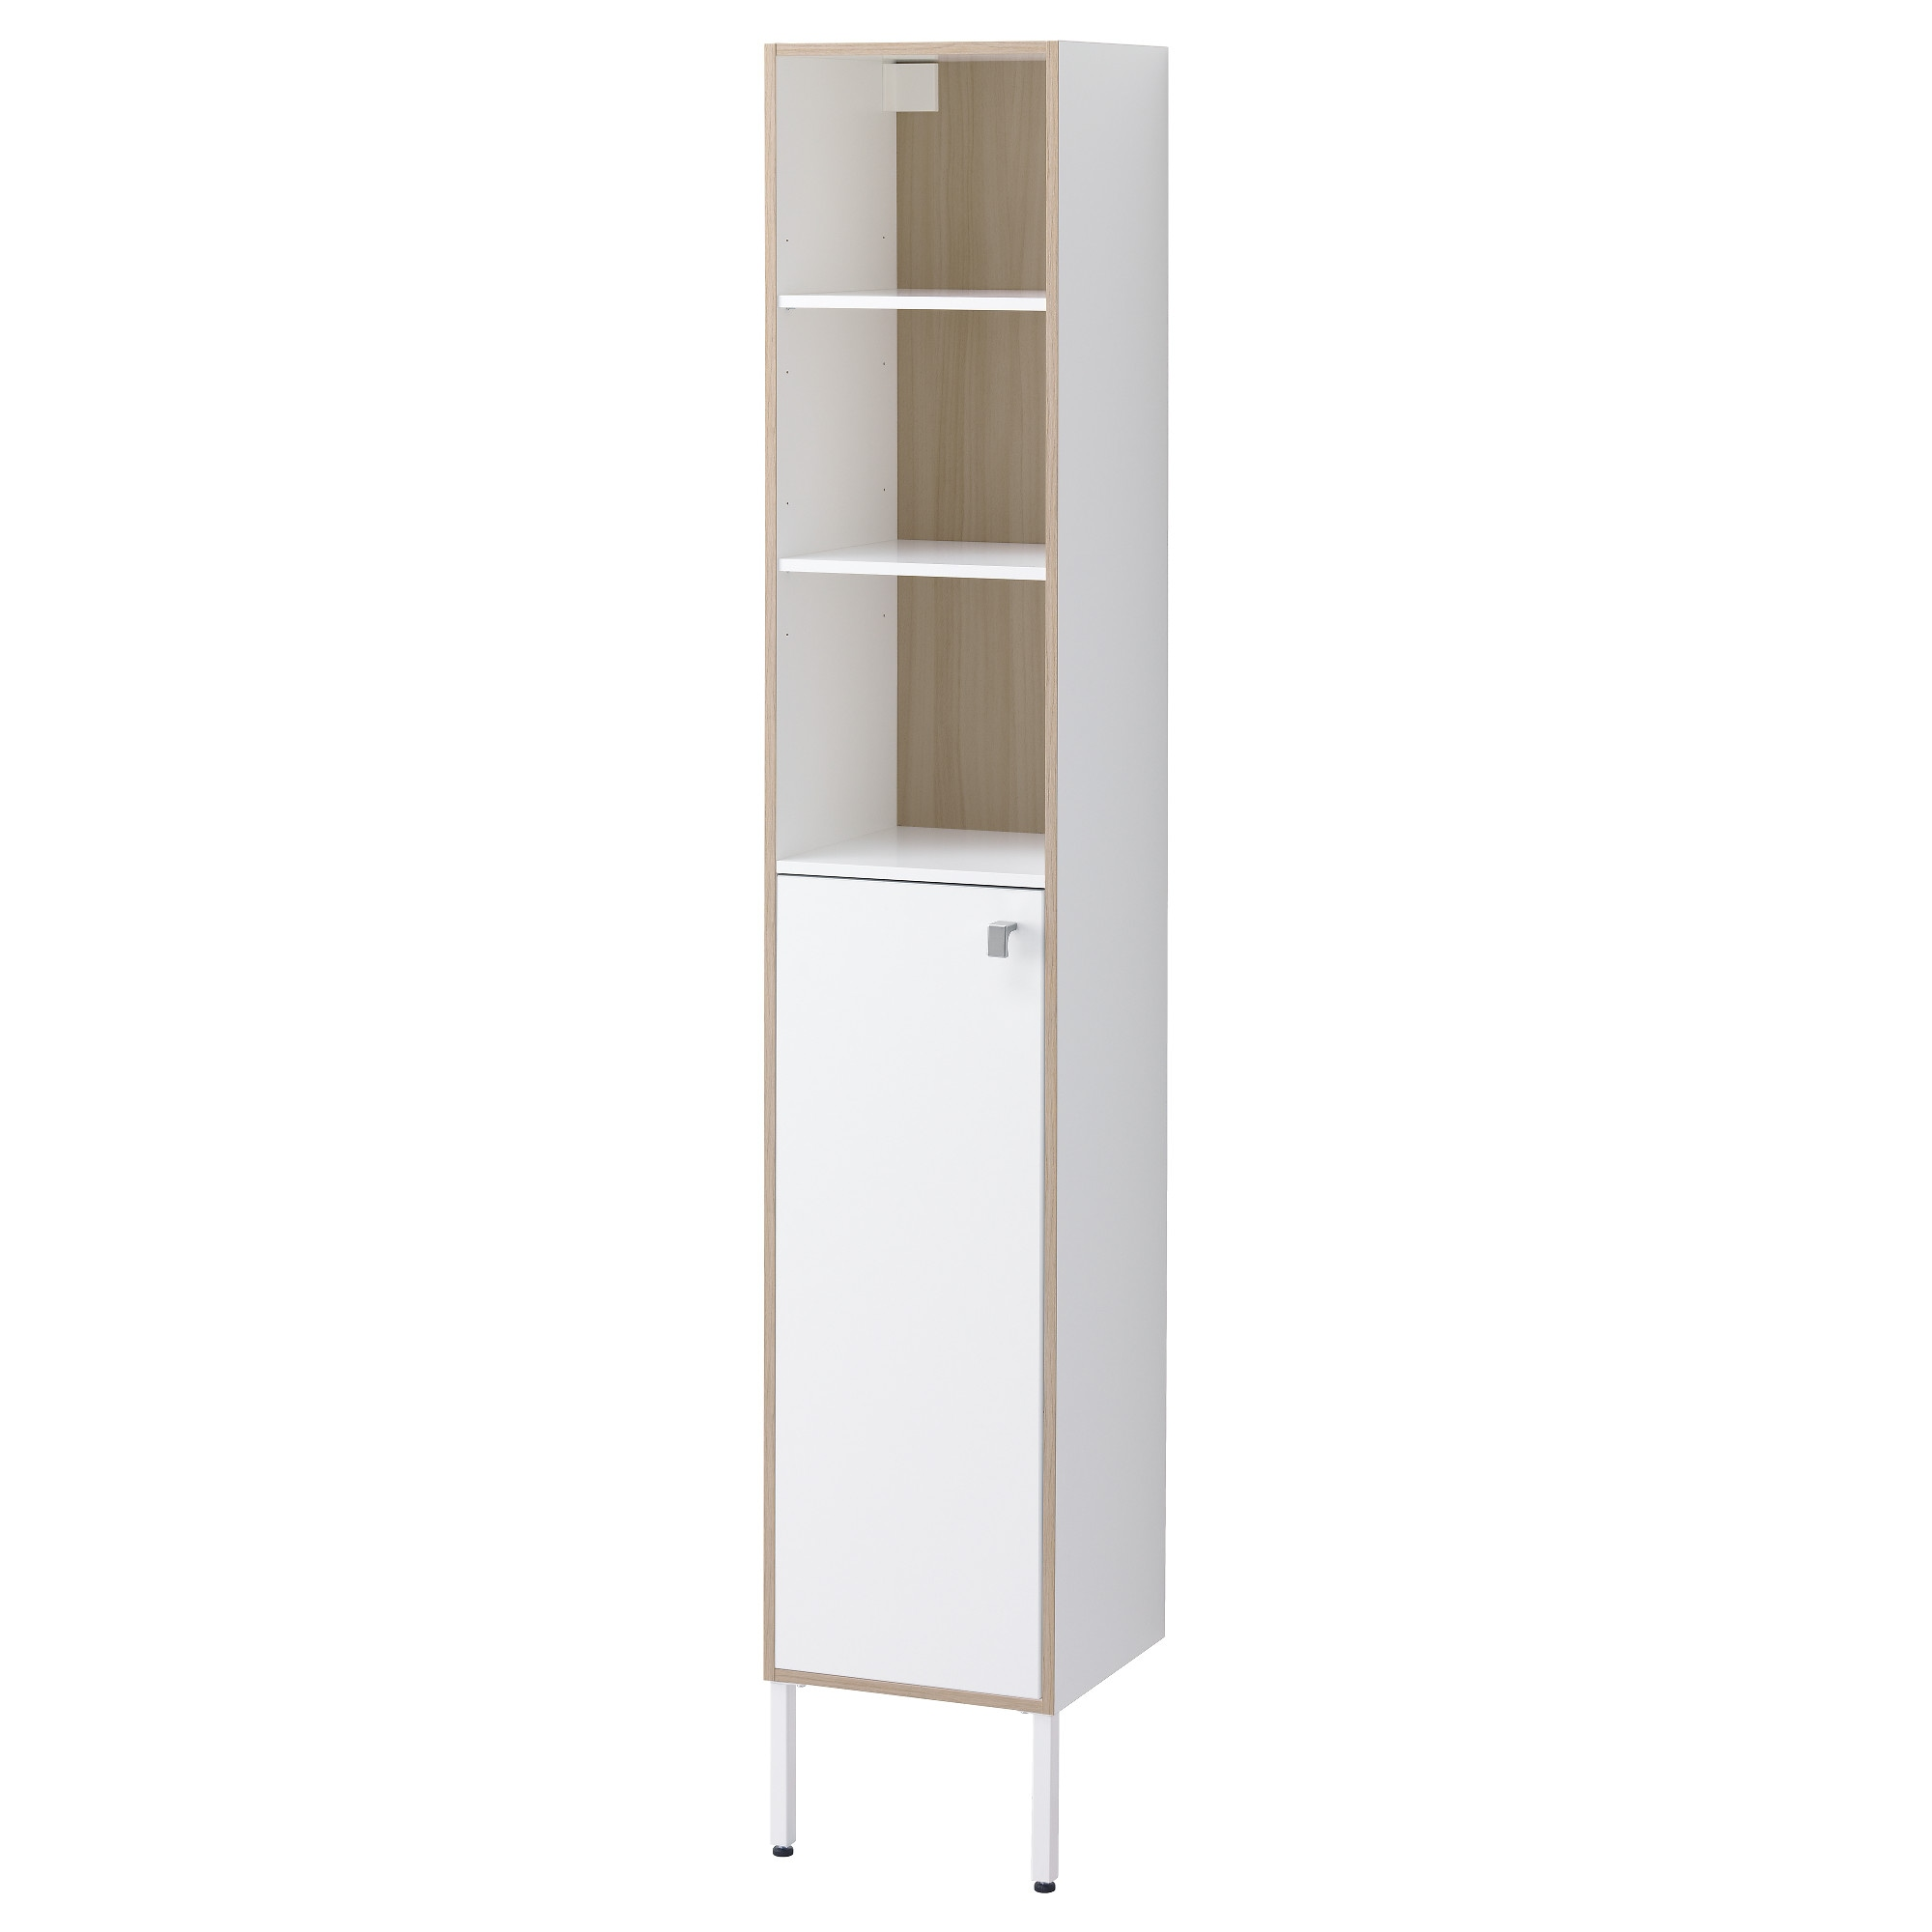 Ikea bathroom floor cabinet - Tyngen High Cabinet White Ash Effect Width 11 3 4 Depth